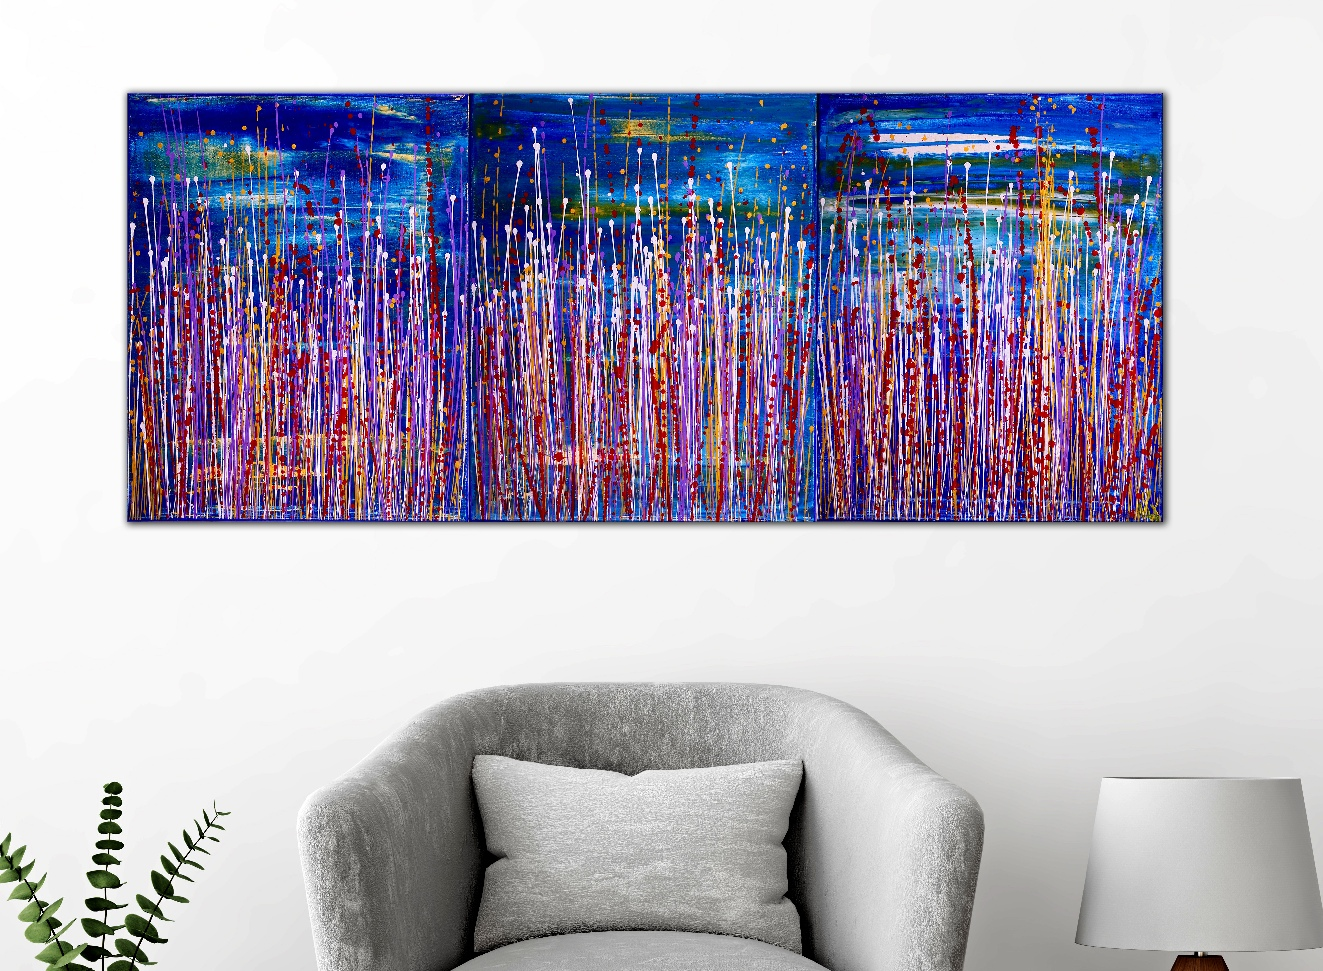 Interrupted panorama 6 by Nestor Toro (2019) Abstract Acrylic painting by Nestor Toro